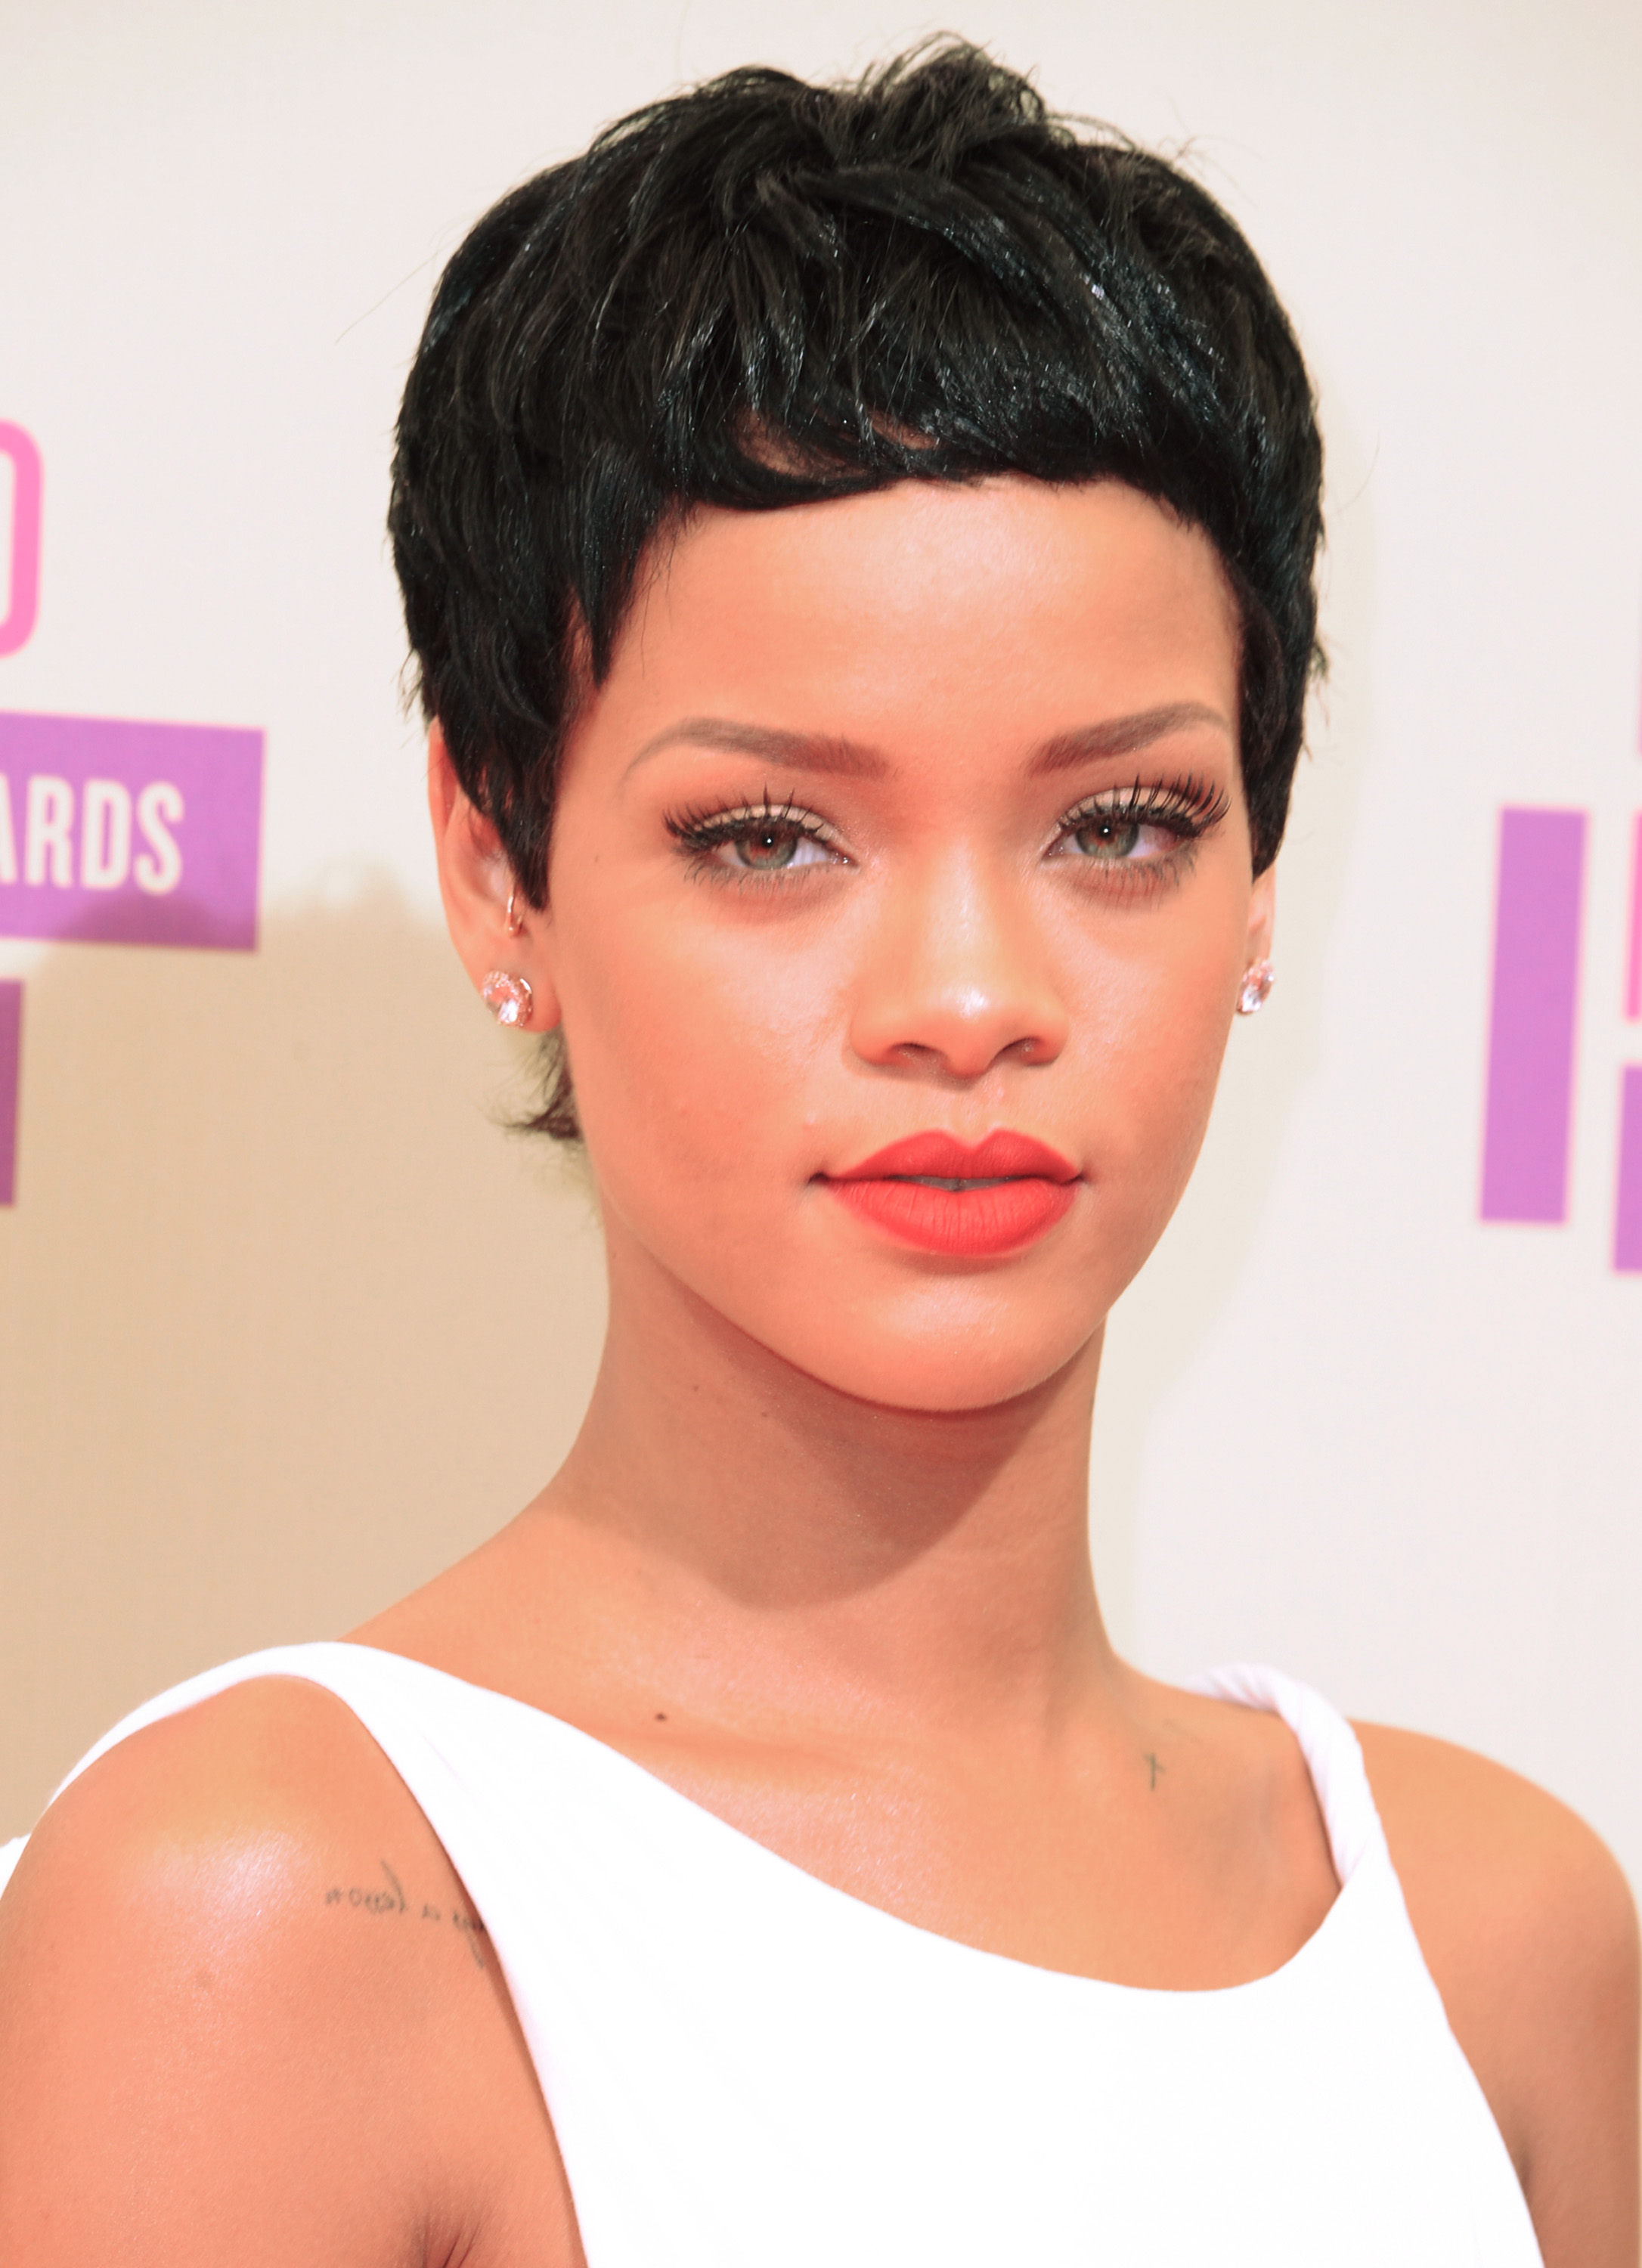 Magnificent 45 Black Hairstyles For Short Hair Short Haircuts For Black Women Hairstyle Inspiration Daily Dogsangcom